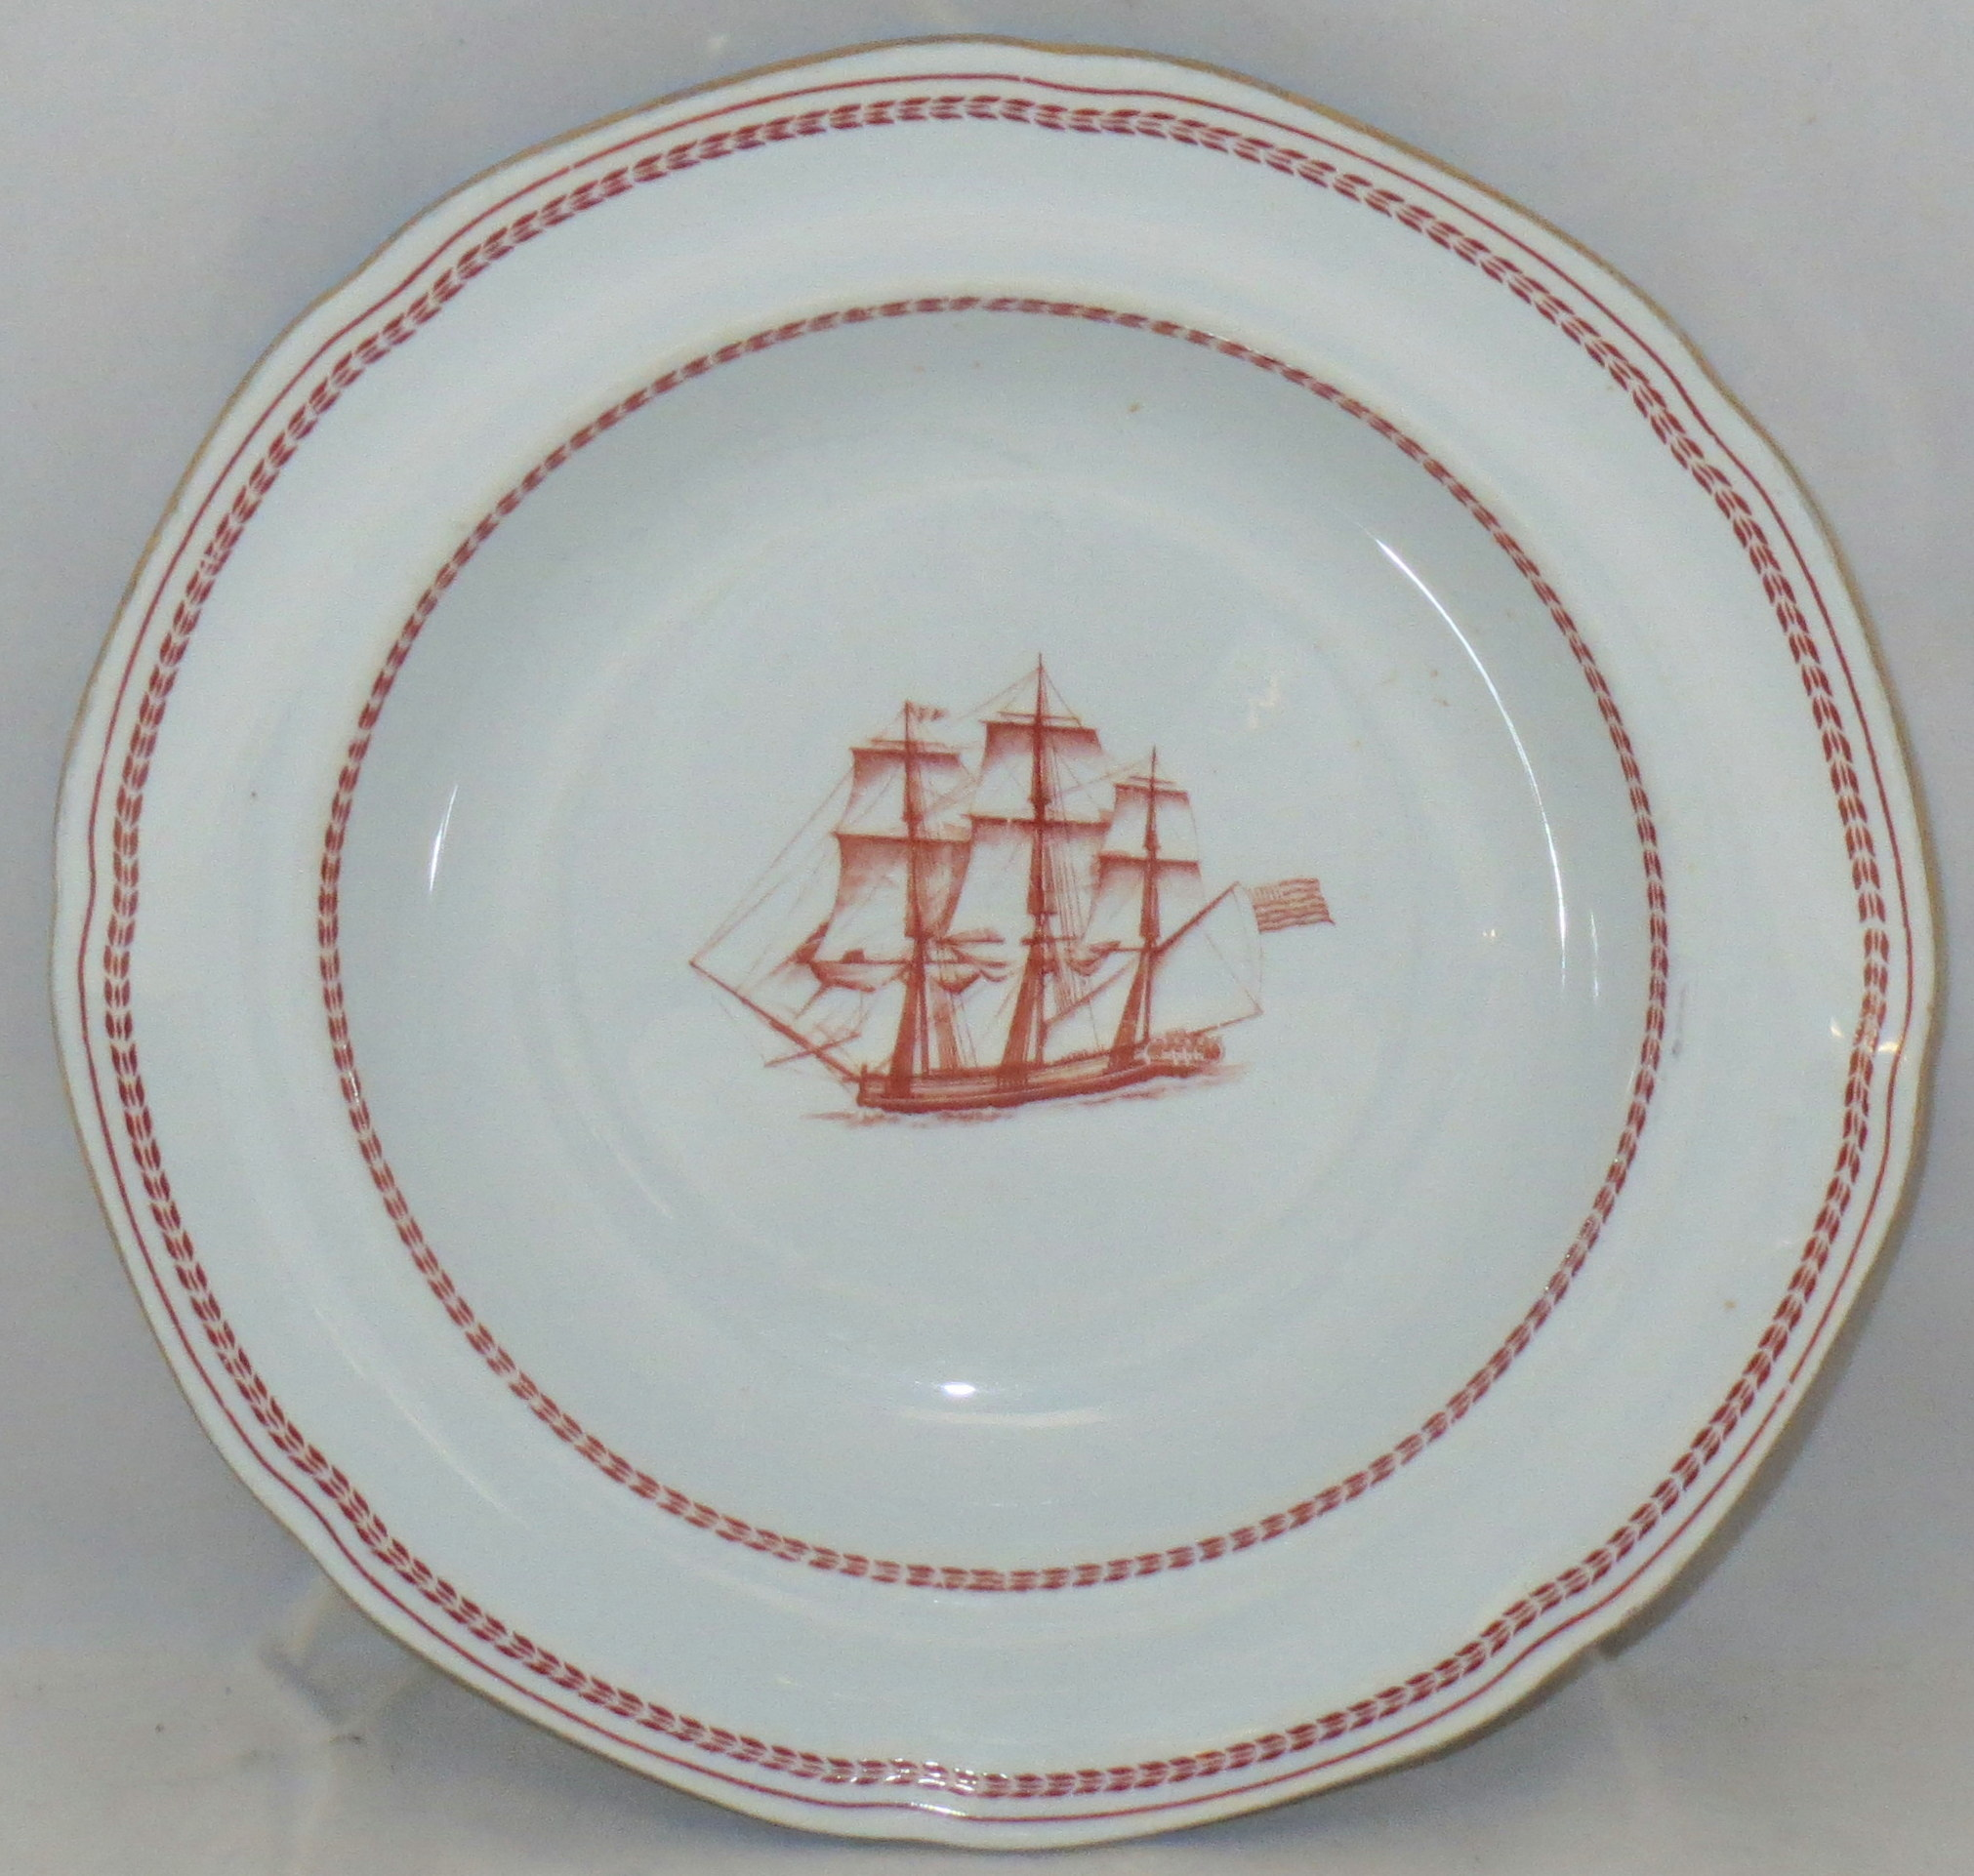 Spode Trade Winds-Red Rim Soup Bowl